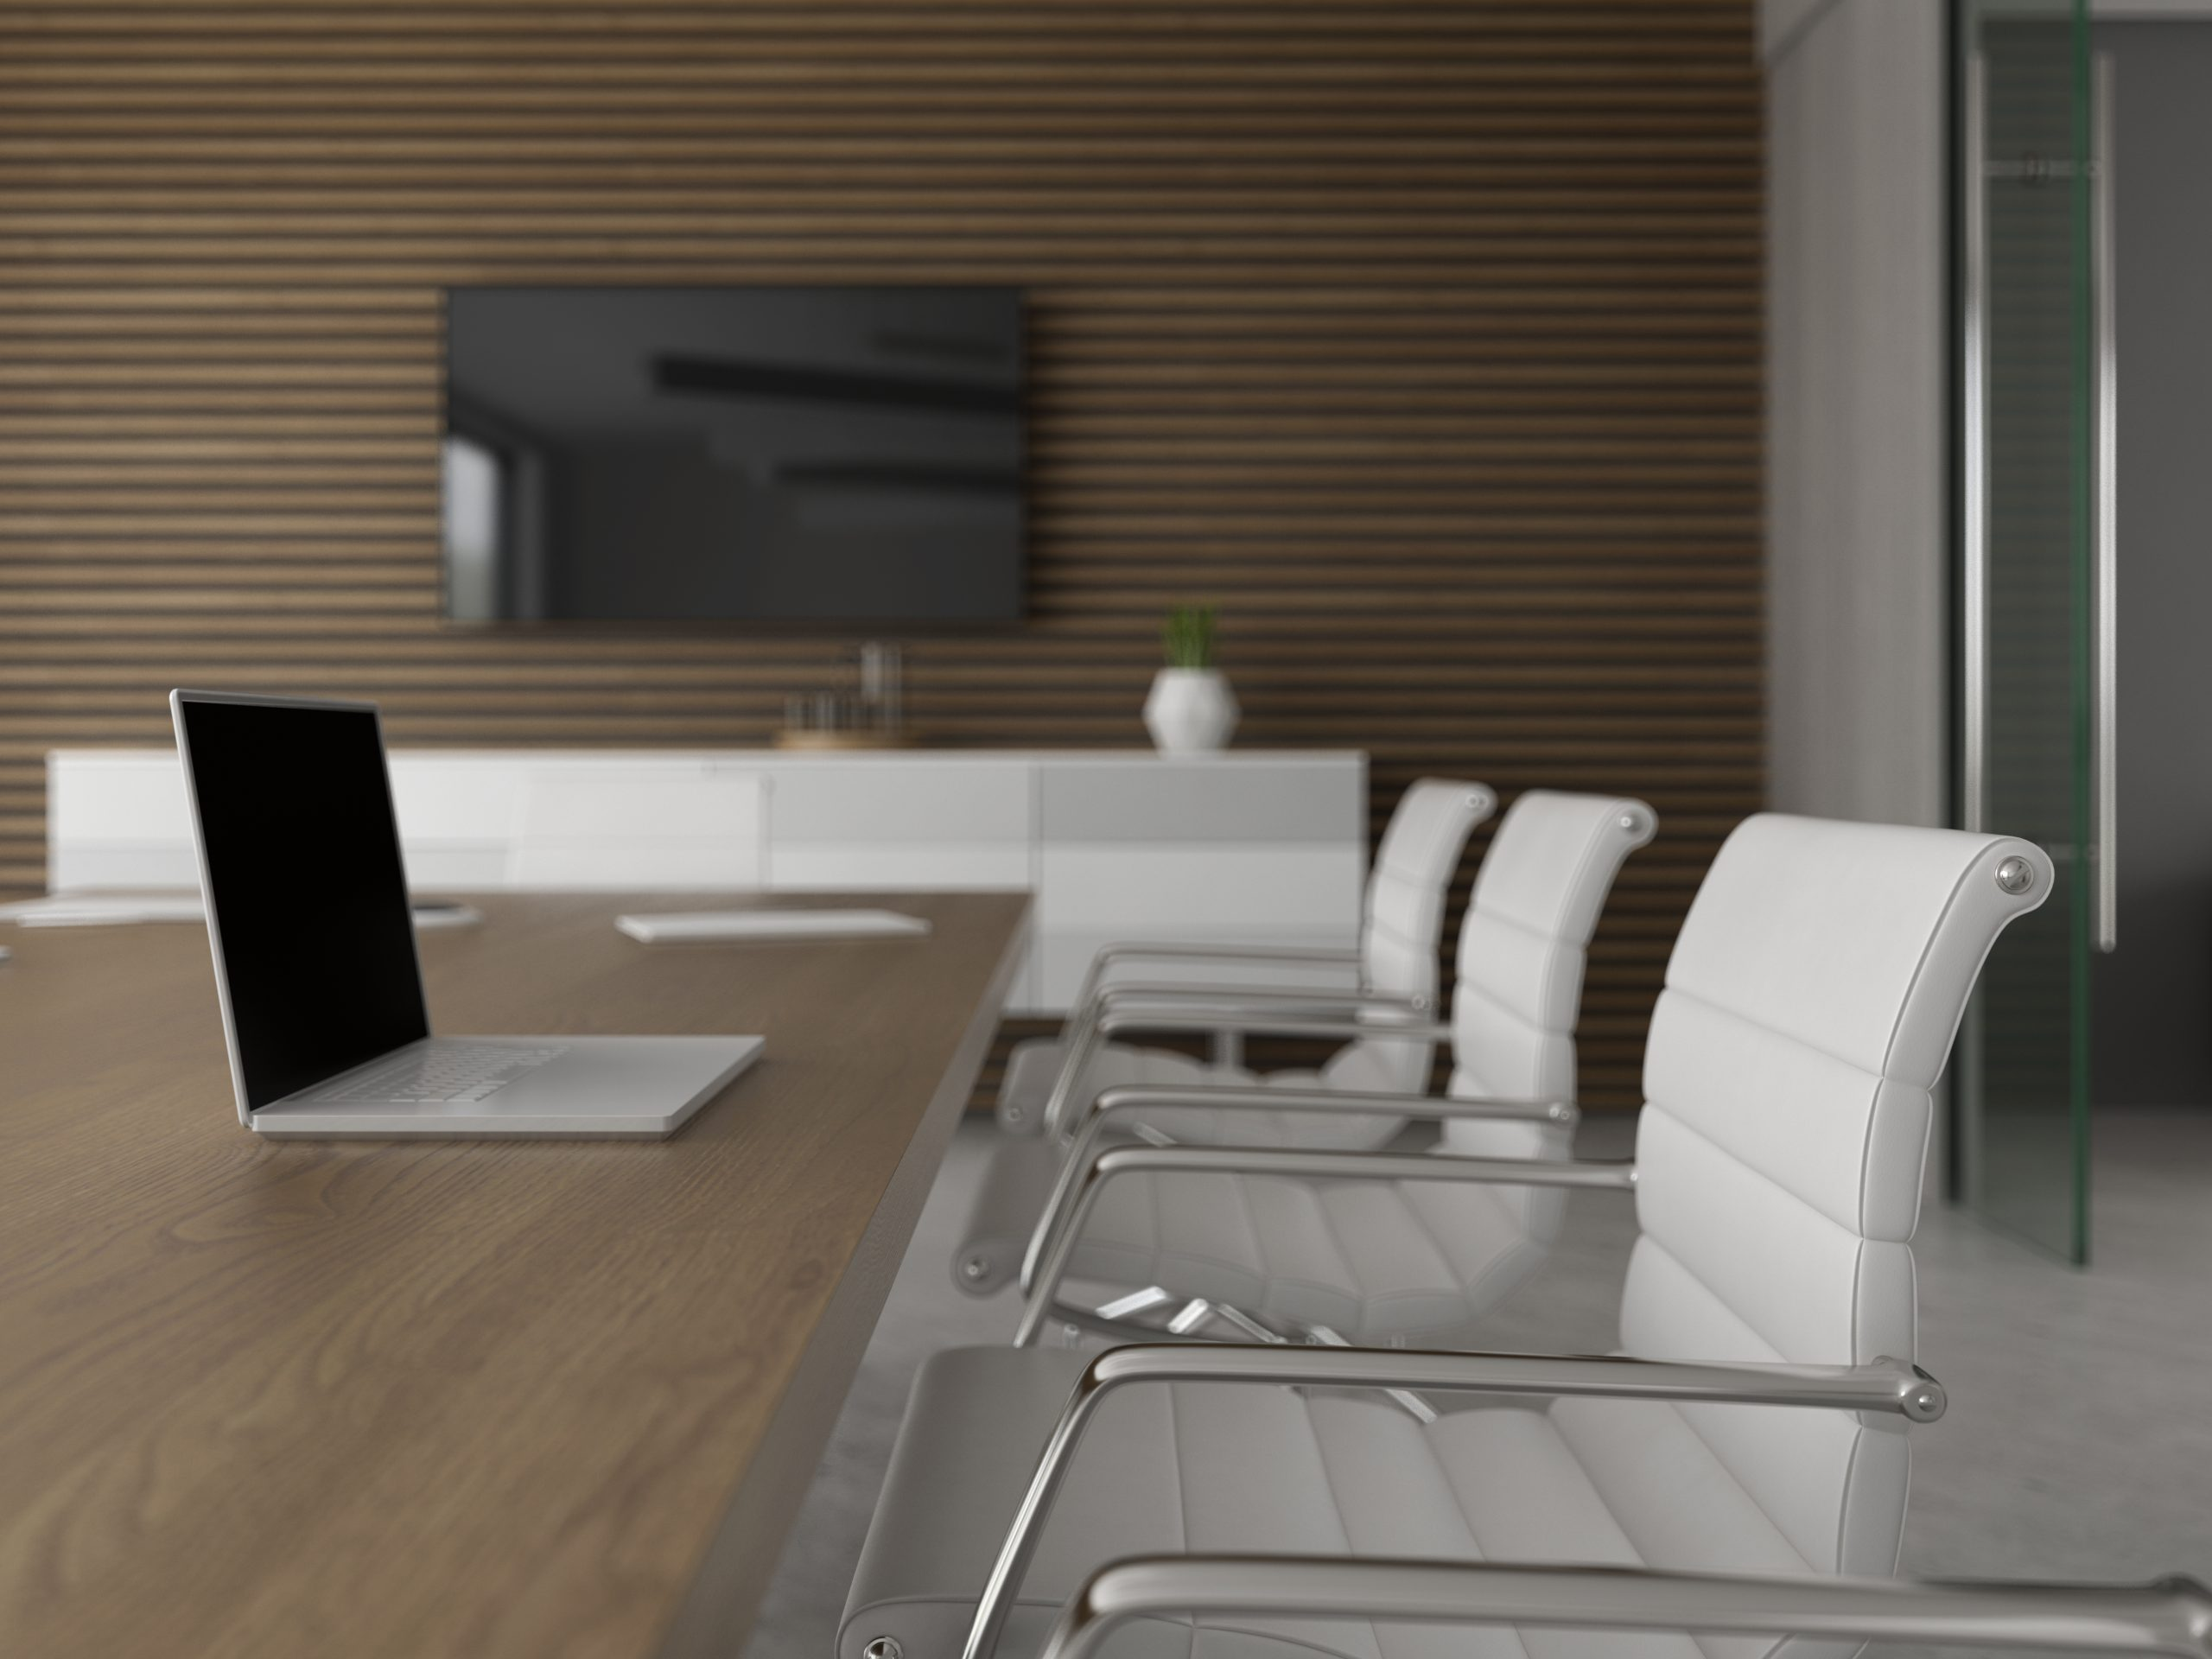 Enabling productive meetings and keeping employees engaged requires high quality meeting room technology.